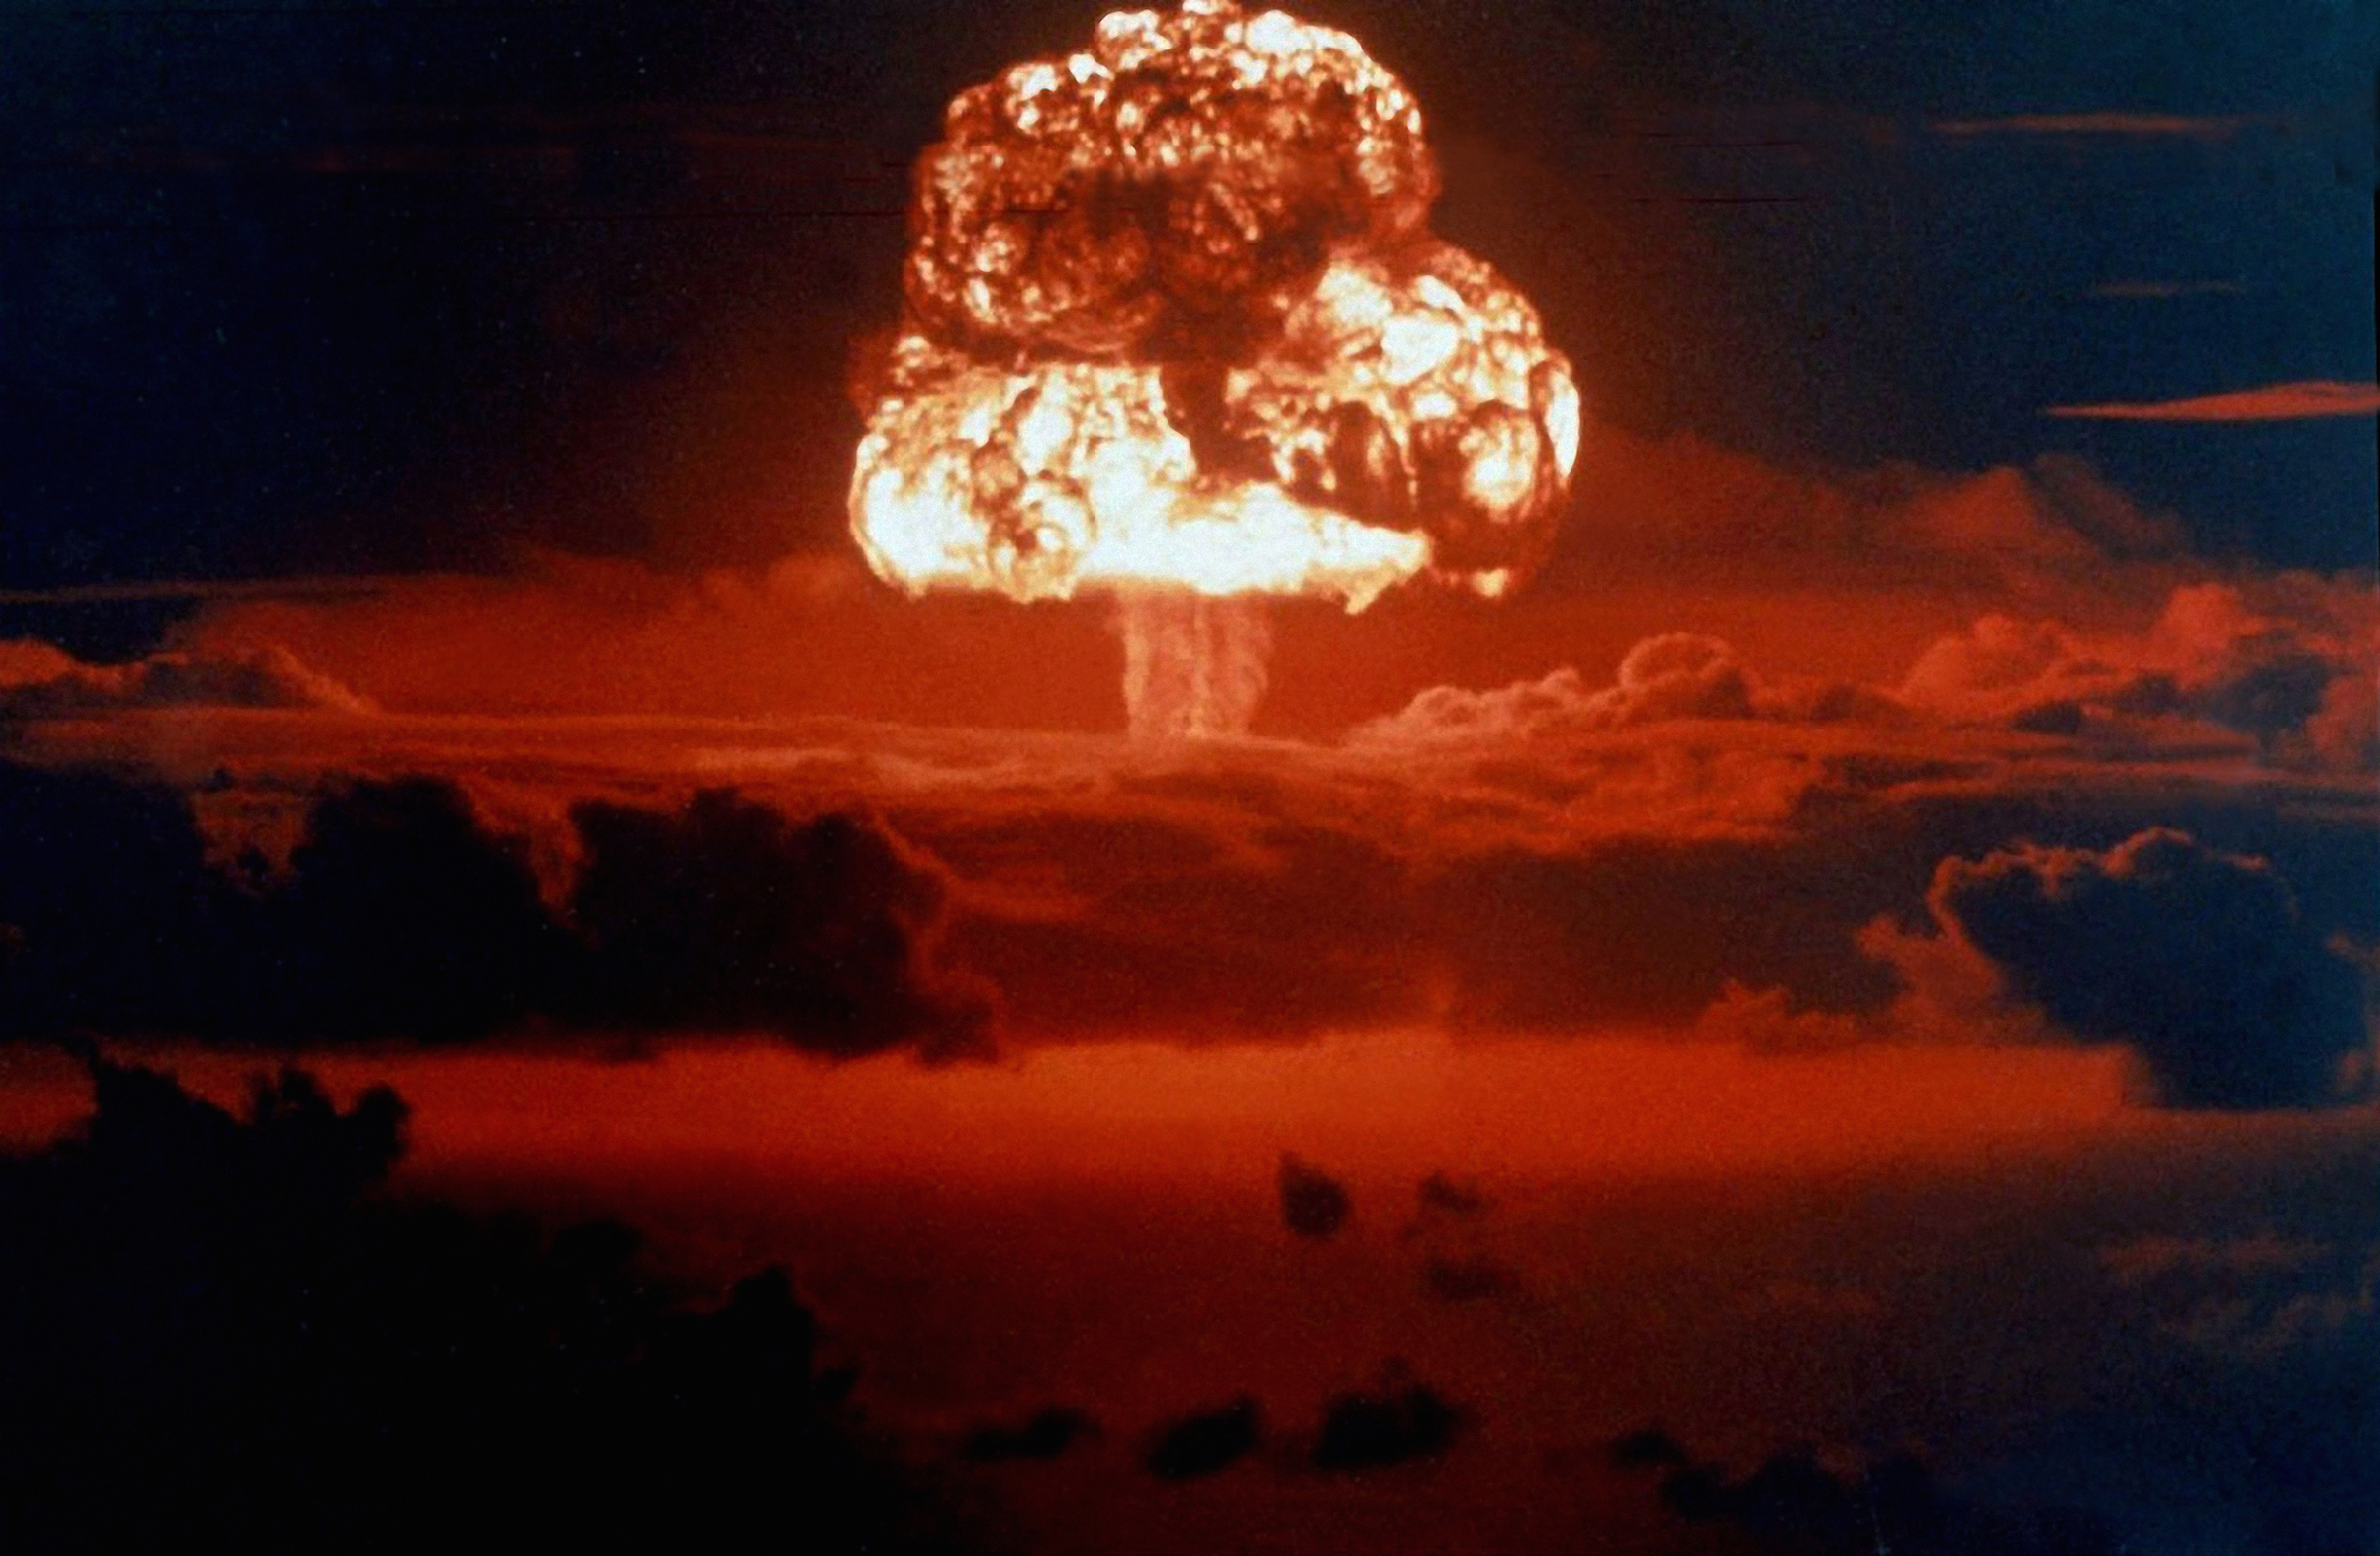 Castle Romeo was the code name given to one of the tests in the Operation Castle series of American thermonuclear tests beginning in March 1954 at Bikini Atoll.